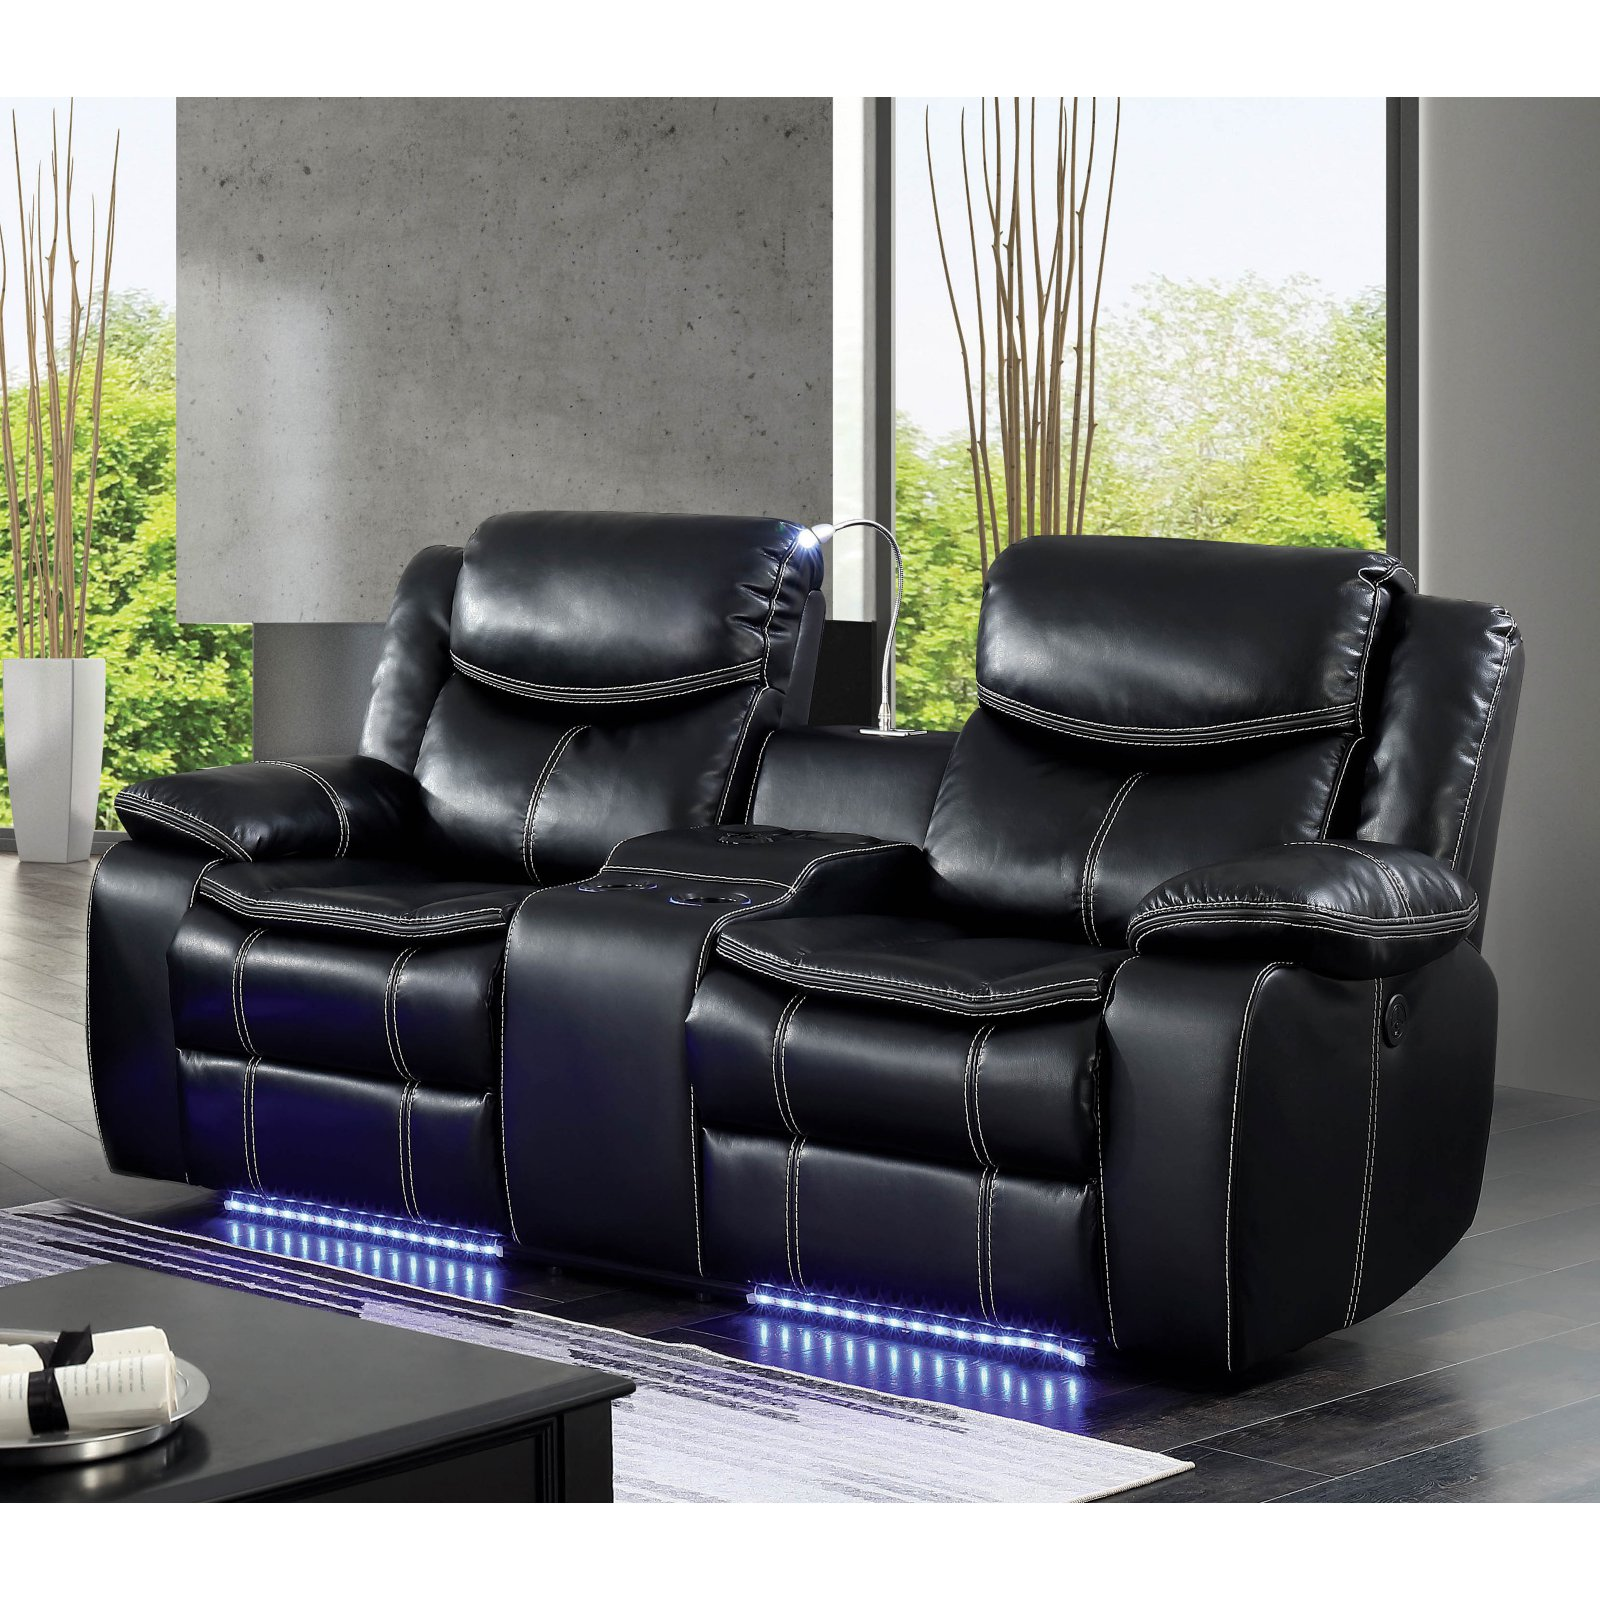 Furniture of America Kristoffer LED Bluetooth Power Recliner Loveseat